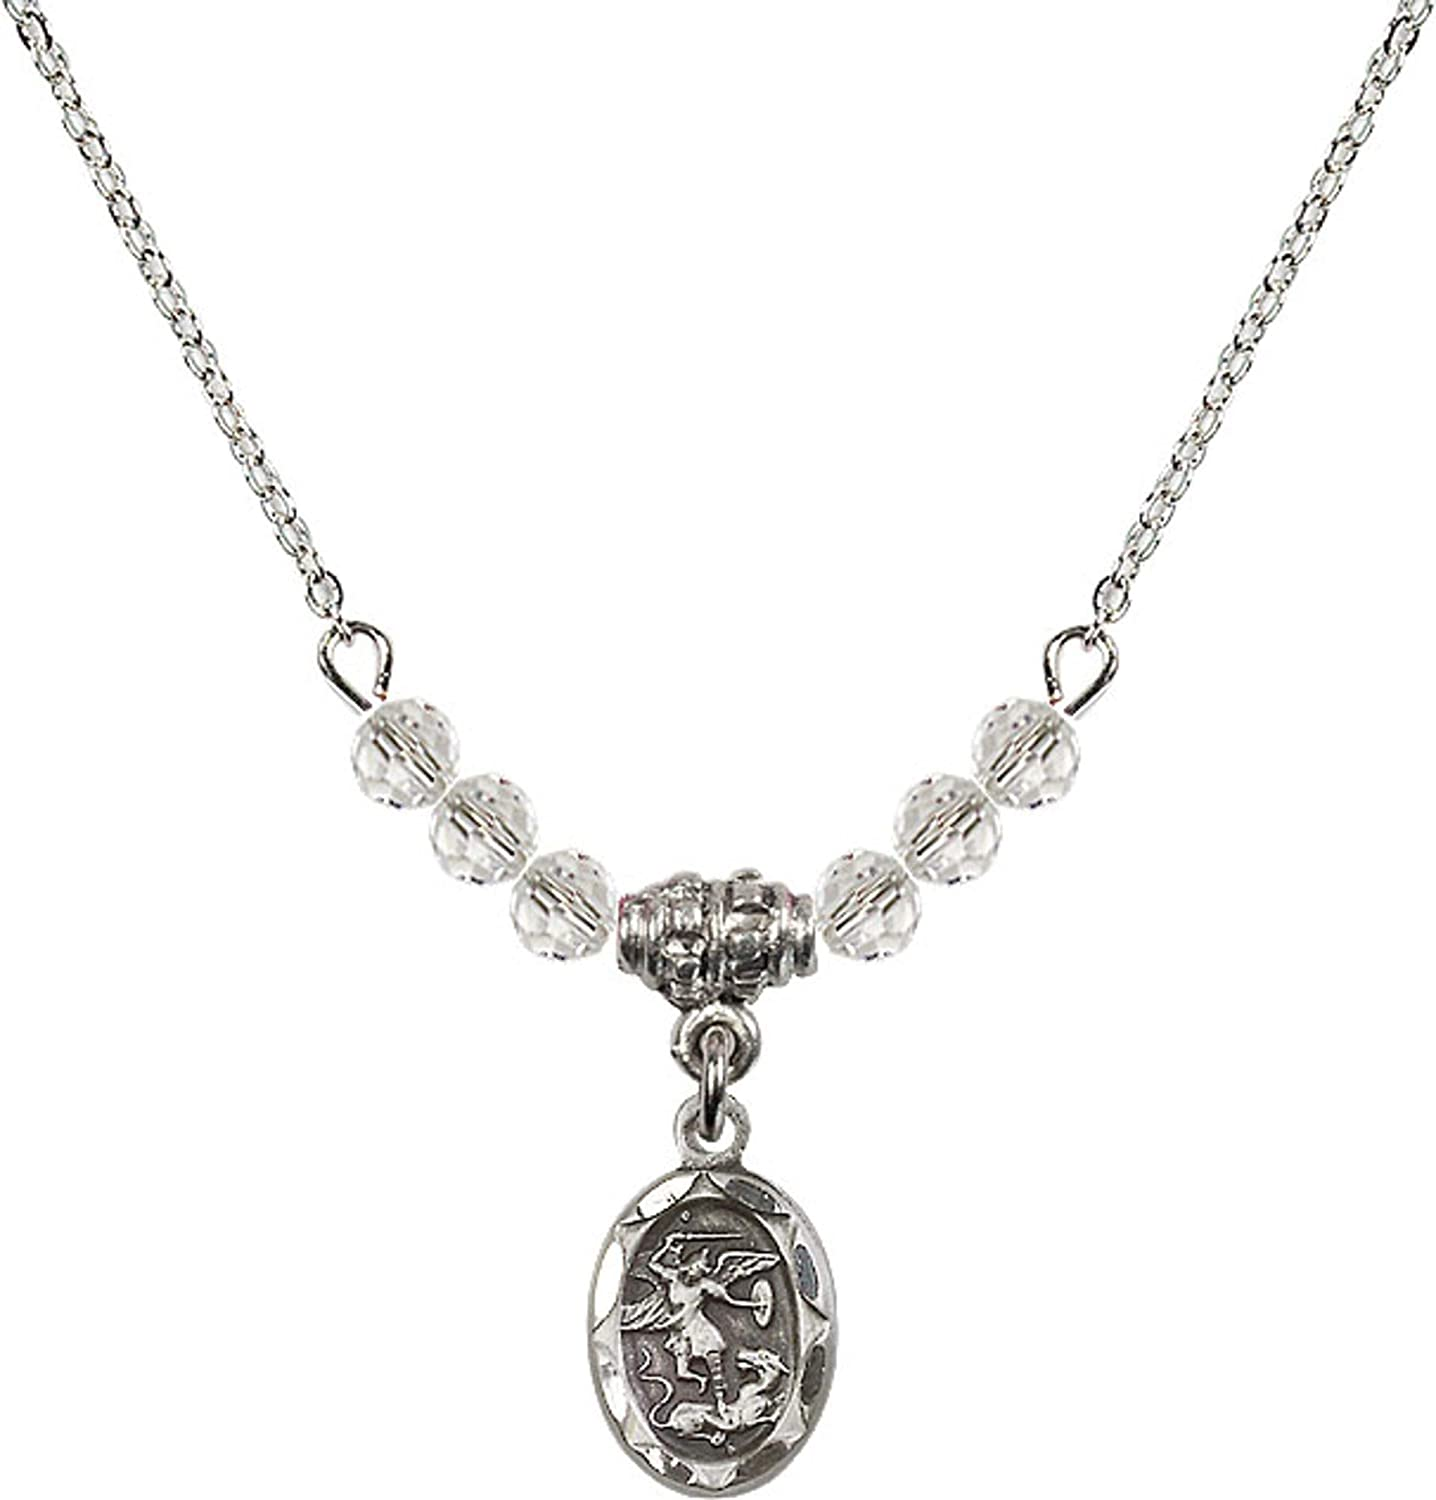 Bonyak Jewelry 18 Inch Rhodium Plated Necklace w// 4mm White April Birth Month Stone Beads and Saint Michael The Archangel Charm